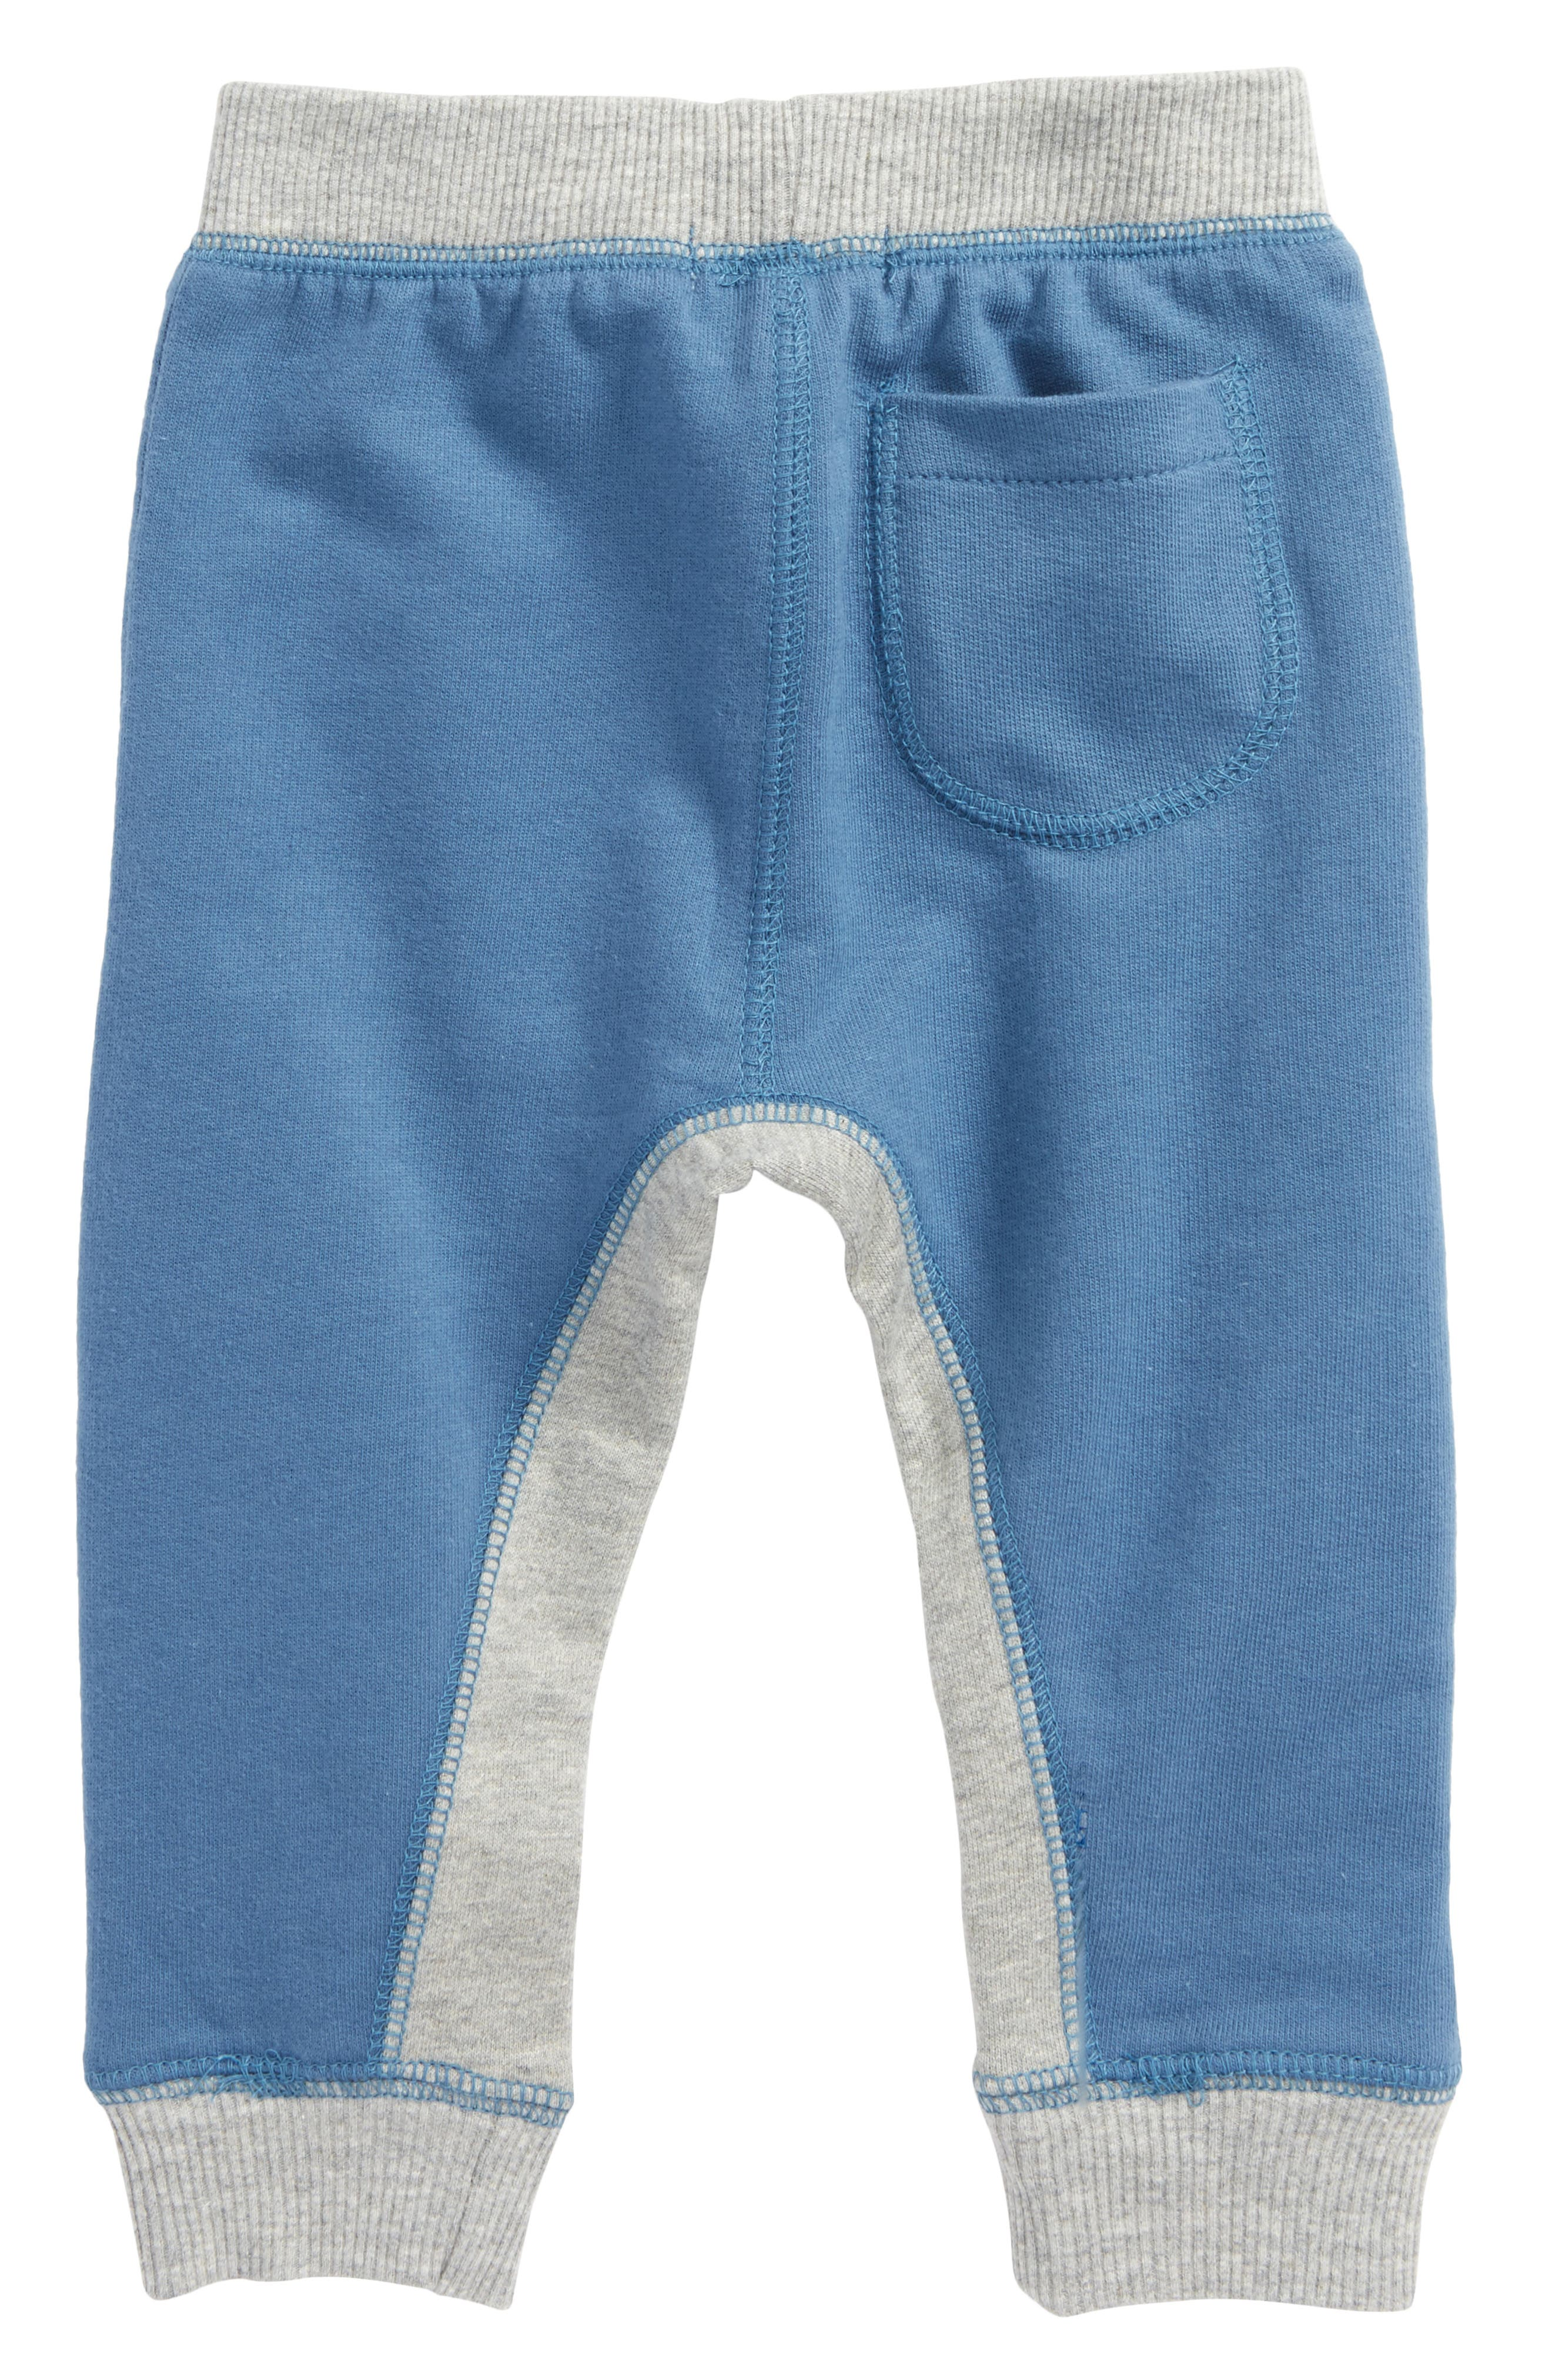 Alternate Image 2  - Burt's Bees Baby Organic Cotton French Terry Pants (Baby Boys)